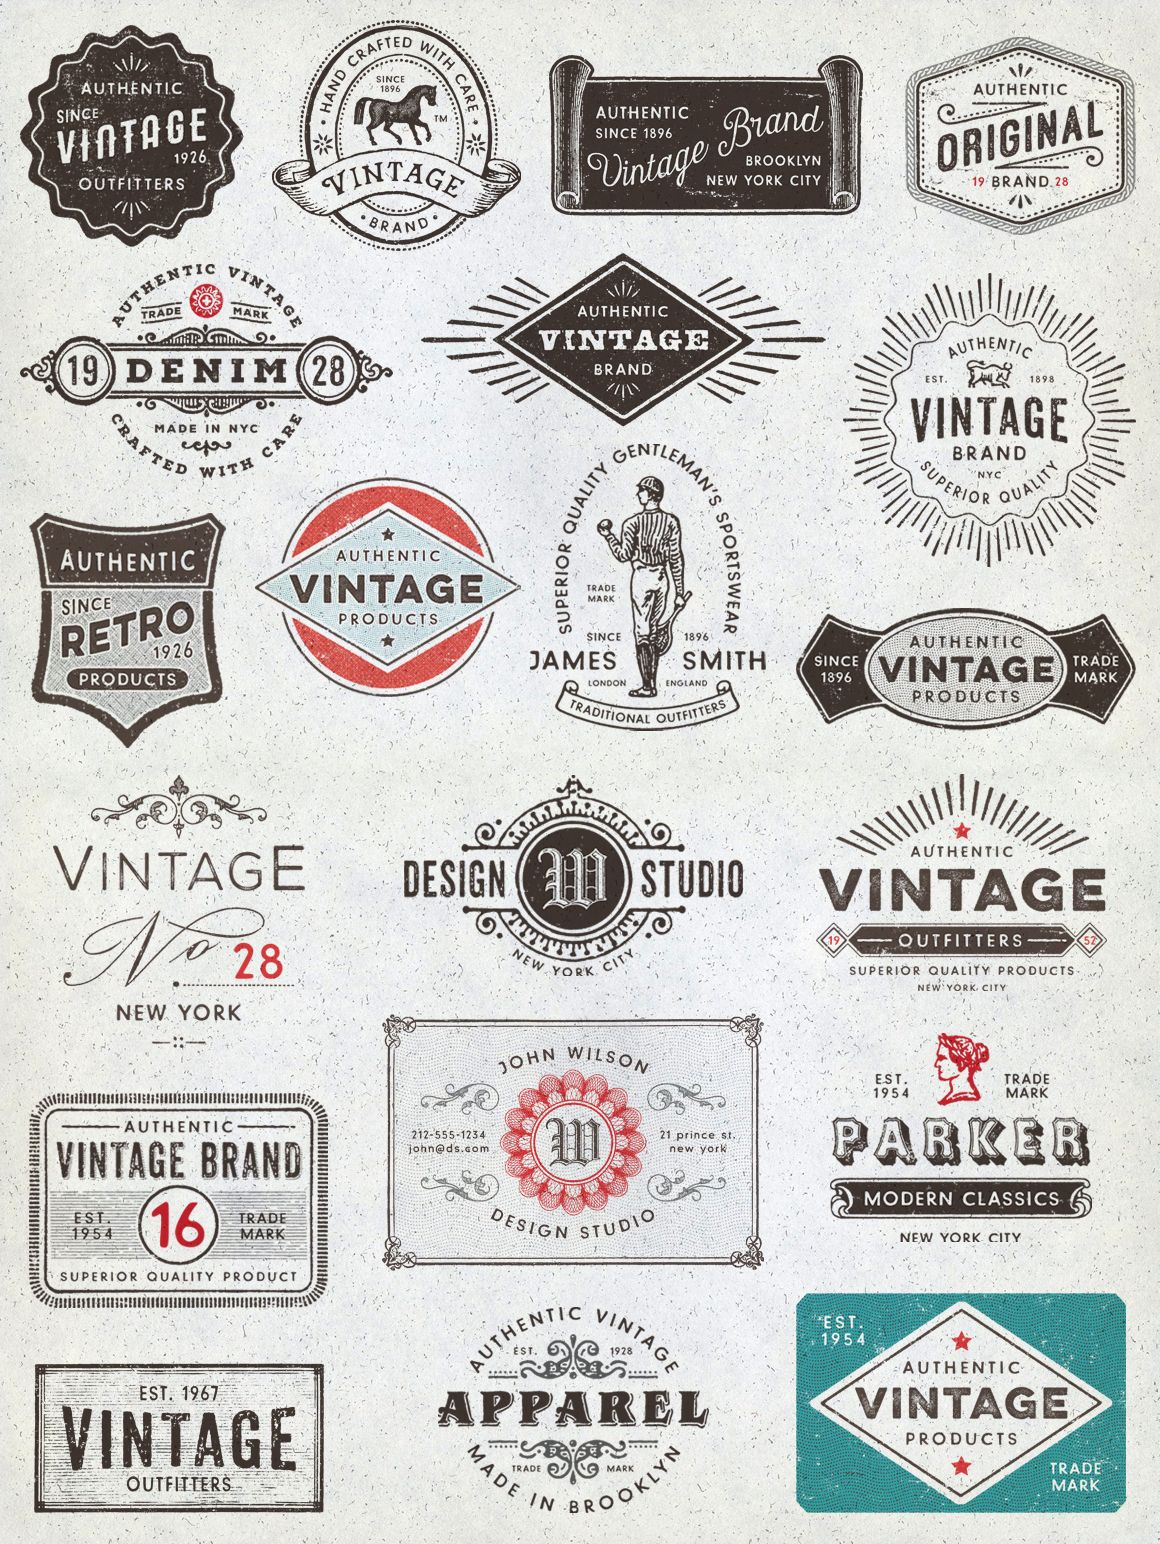 Vintage Logo Design Kit with BONUS by DISTRICT 62 STUDIO on Creative Market